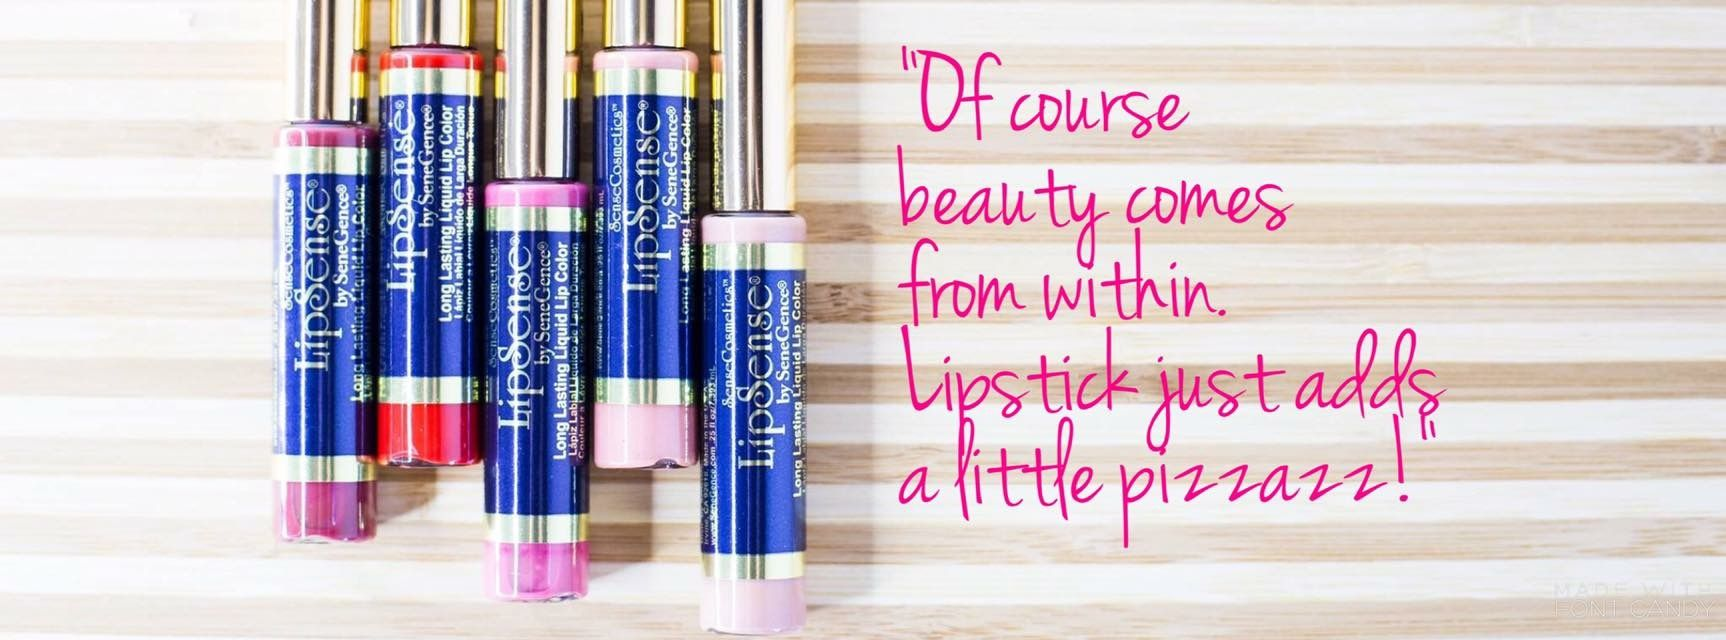 Kissmelips Senegence Lipsense Kissmelipswithmelissa Gmail Com Fb